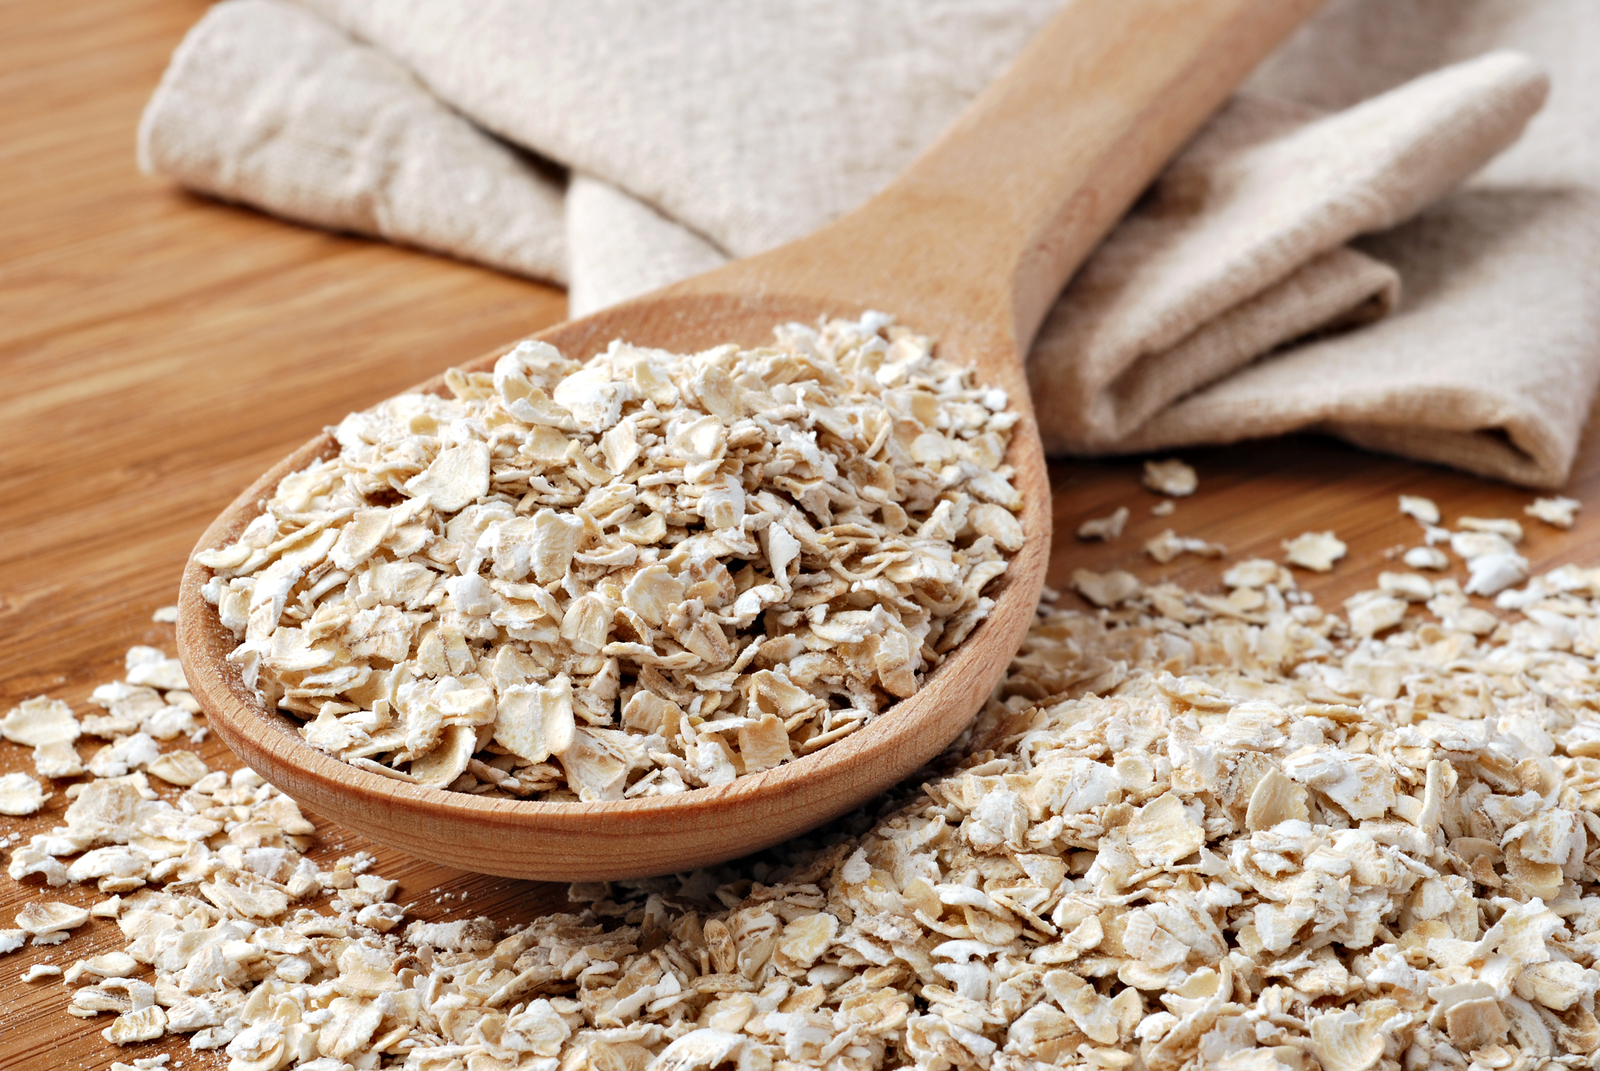 Oats and celiac